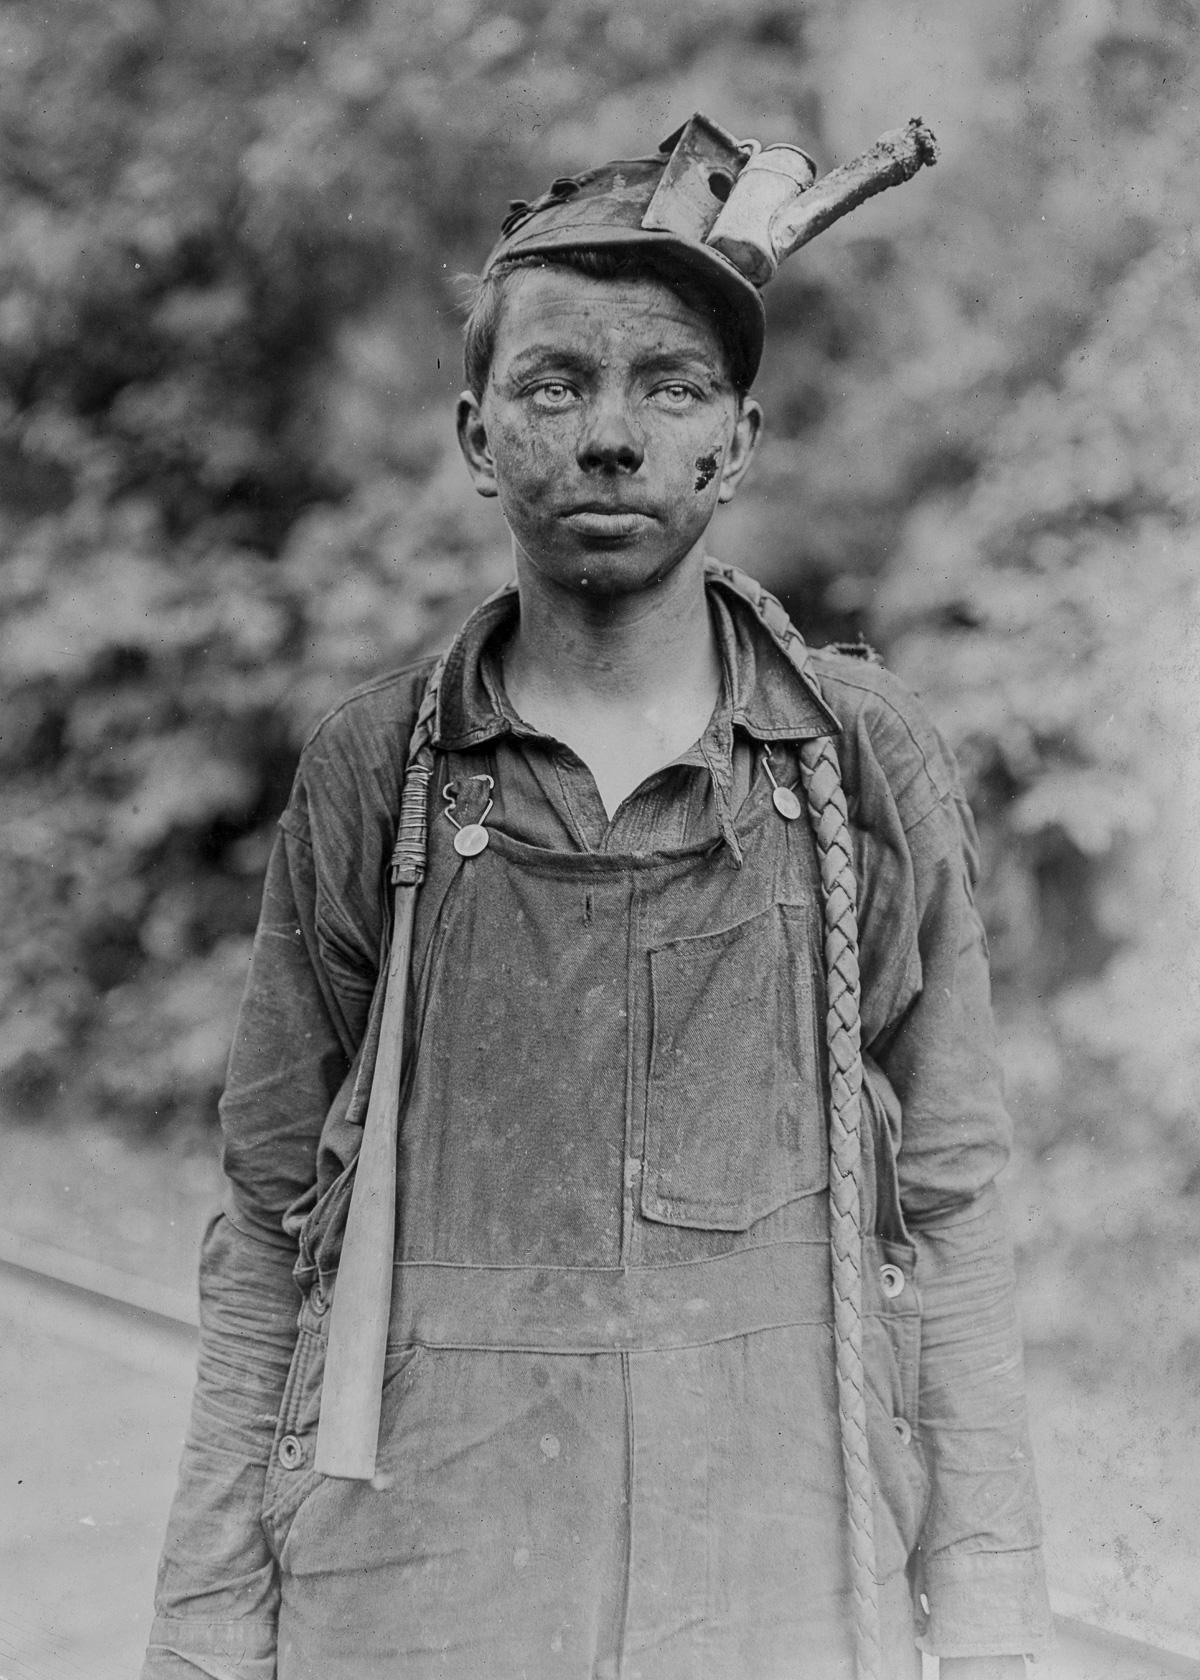 RT @mashable: These photos of young miners helped curb child labor in the U.S. http://t.co/byGeuIyUBa http://t.co/EhLsh81OpJ